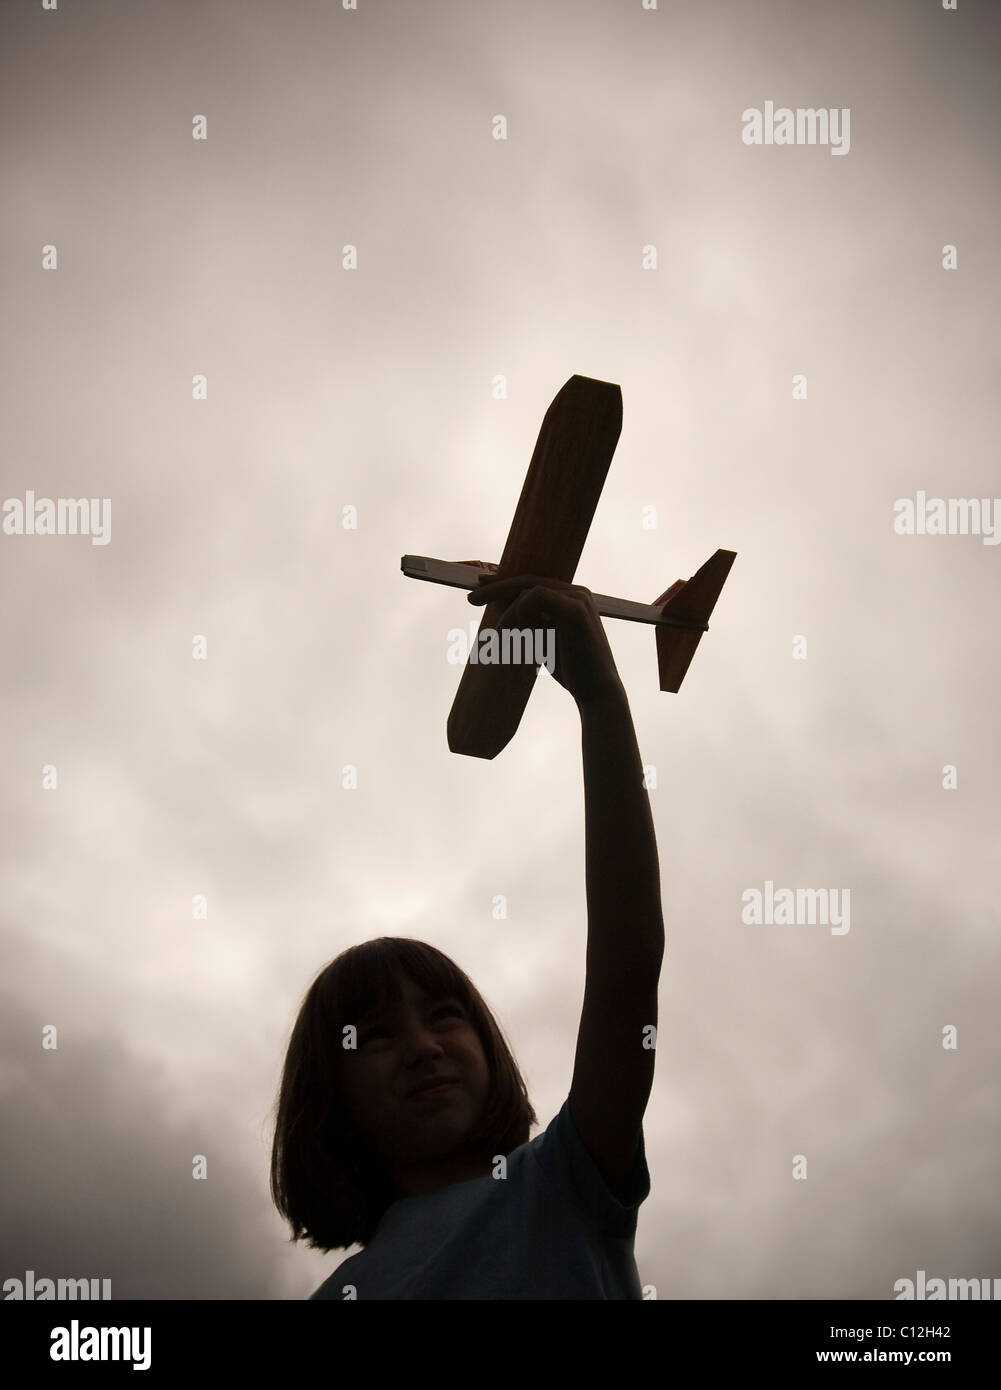 A ten year old girl holds a toy balsa wood plane as she is silhouetted against a dark and cloudy sky. - Stock Image